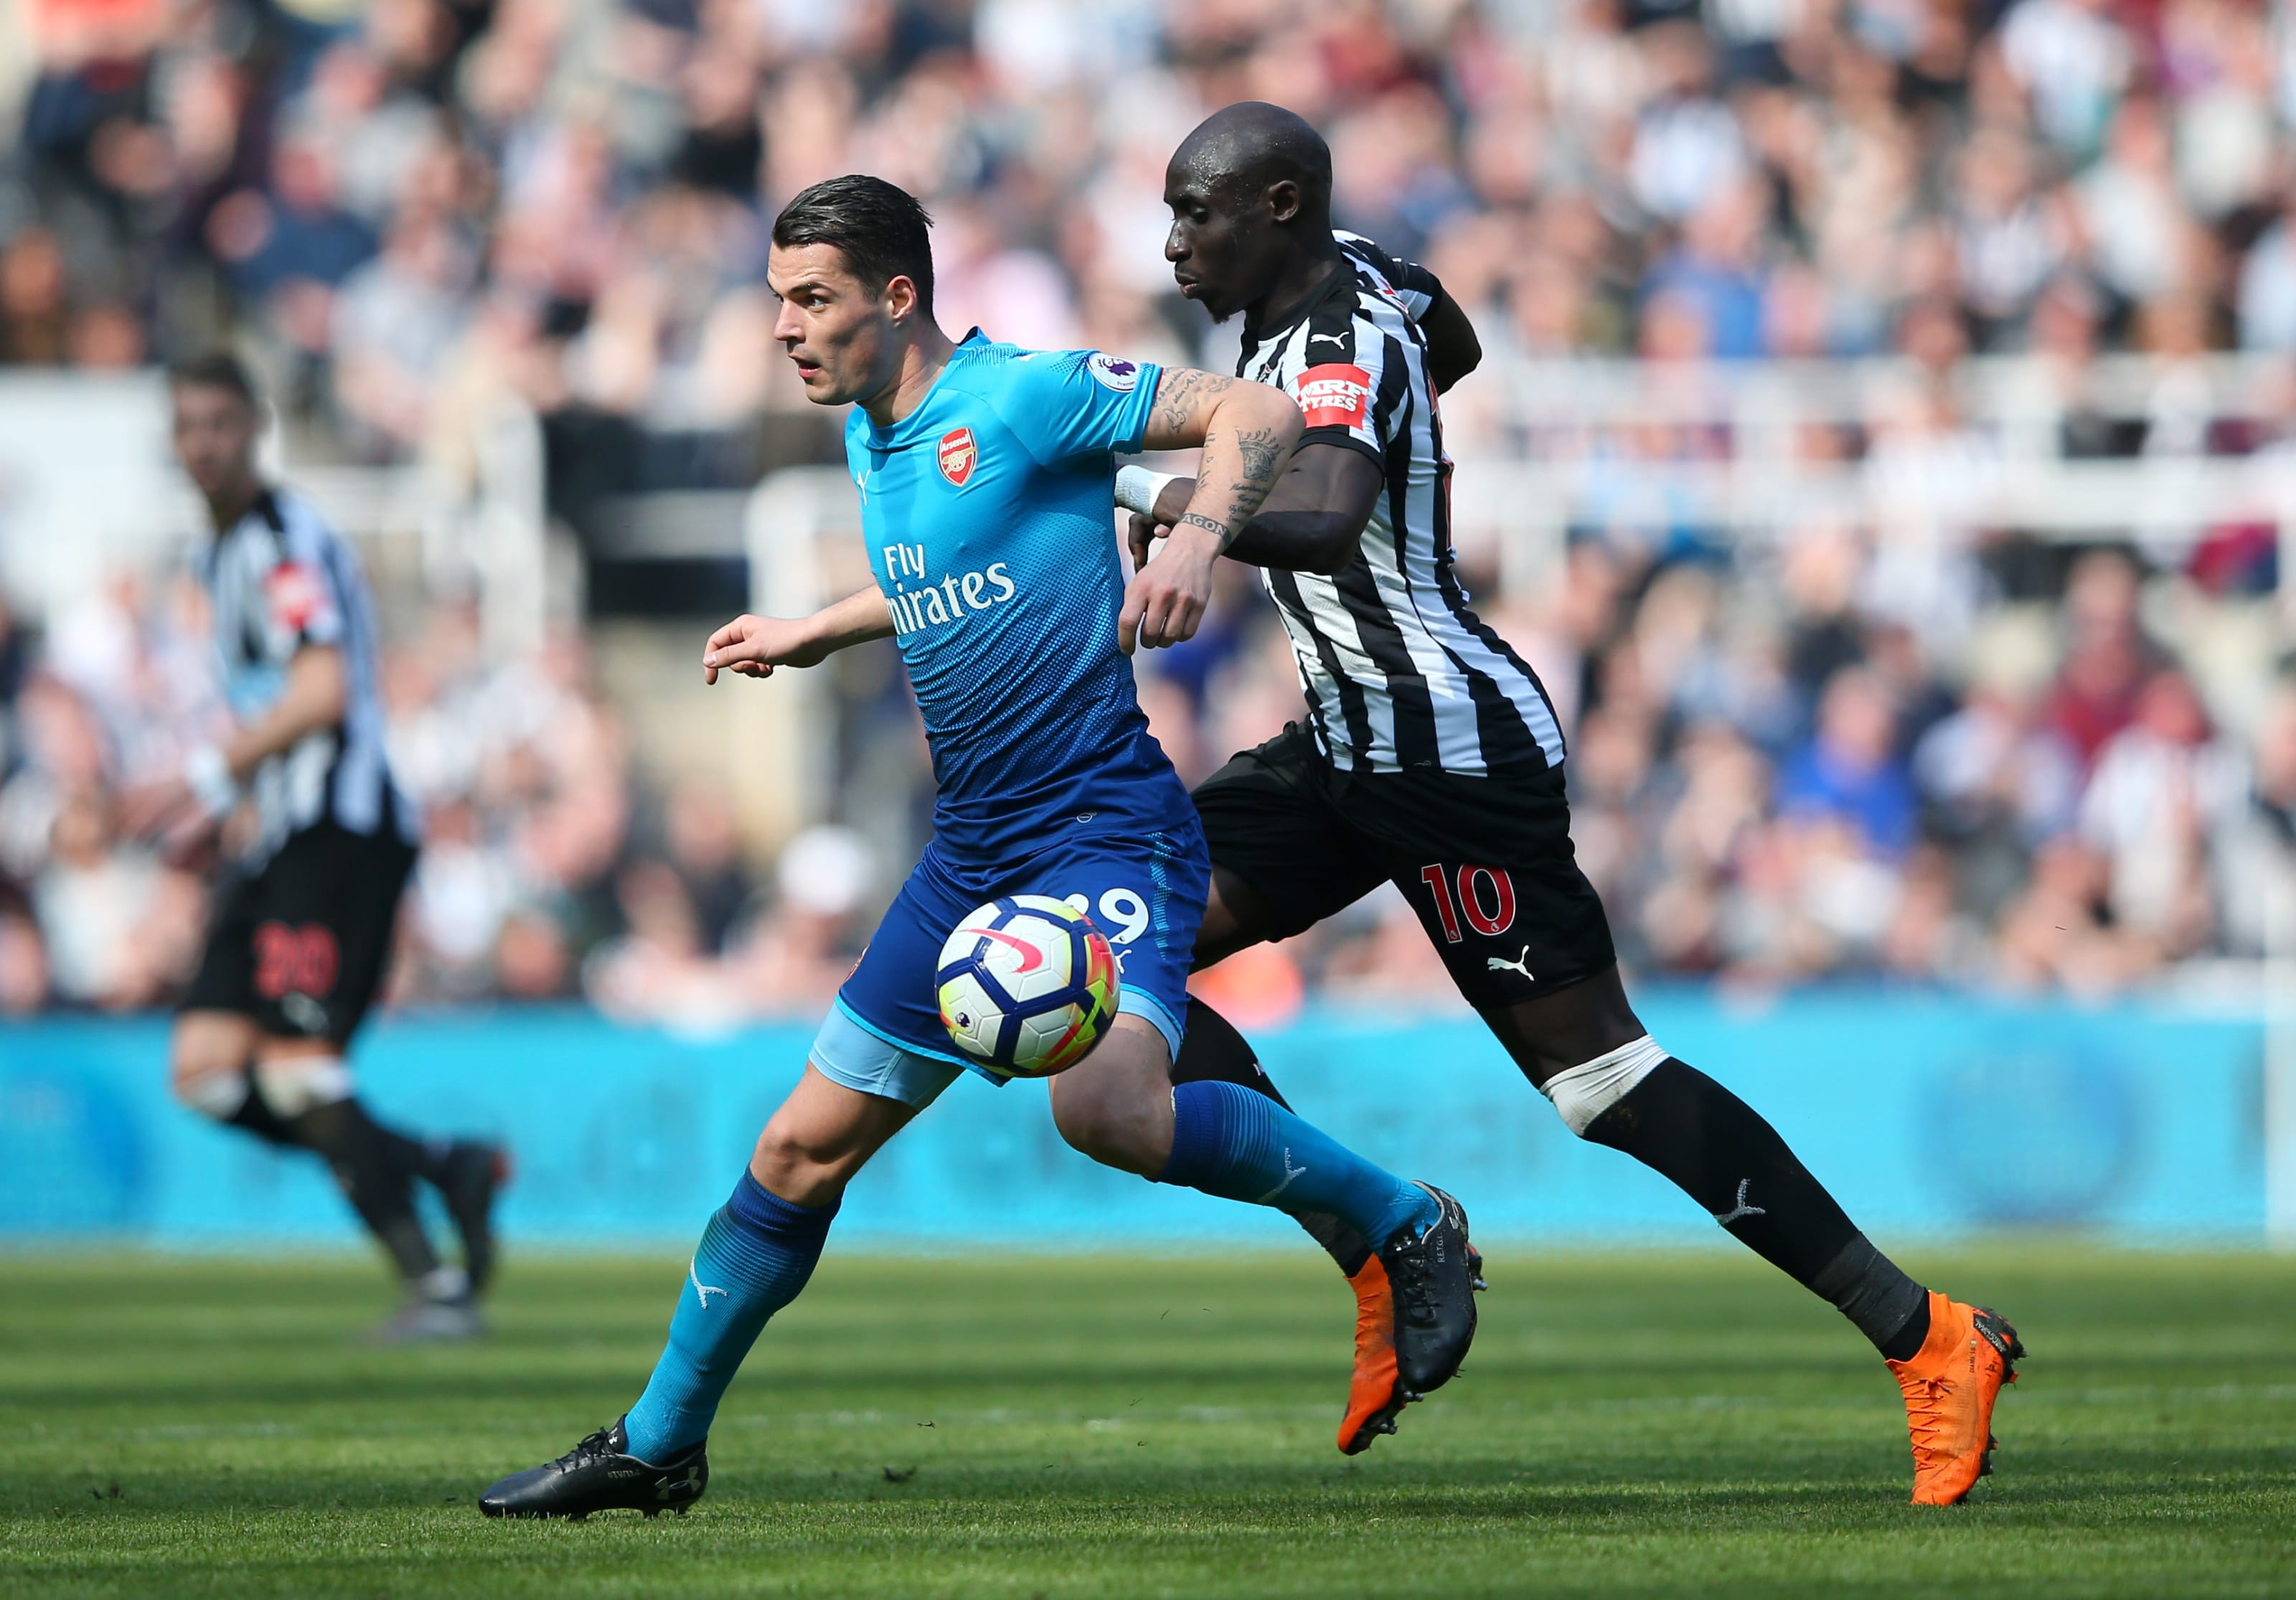 Newcastle United vs Arsenal player ratings: Might as well ...